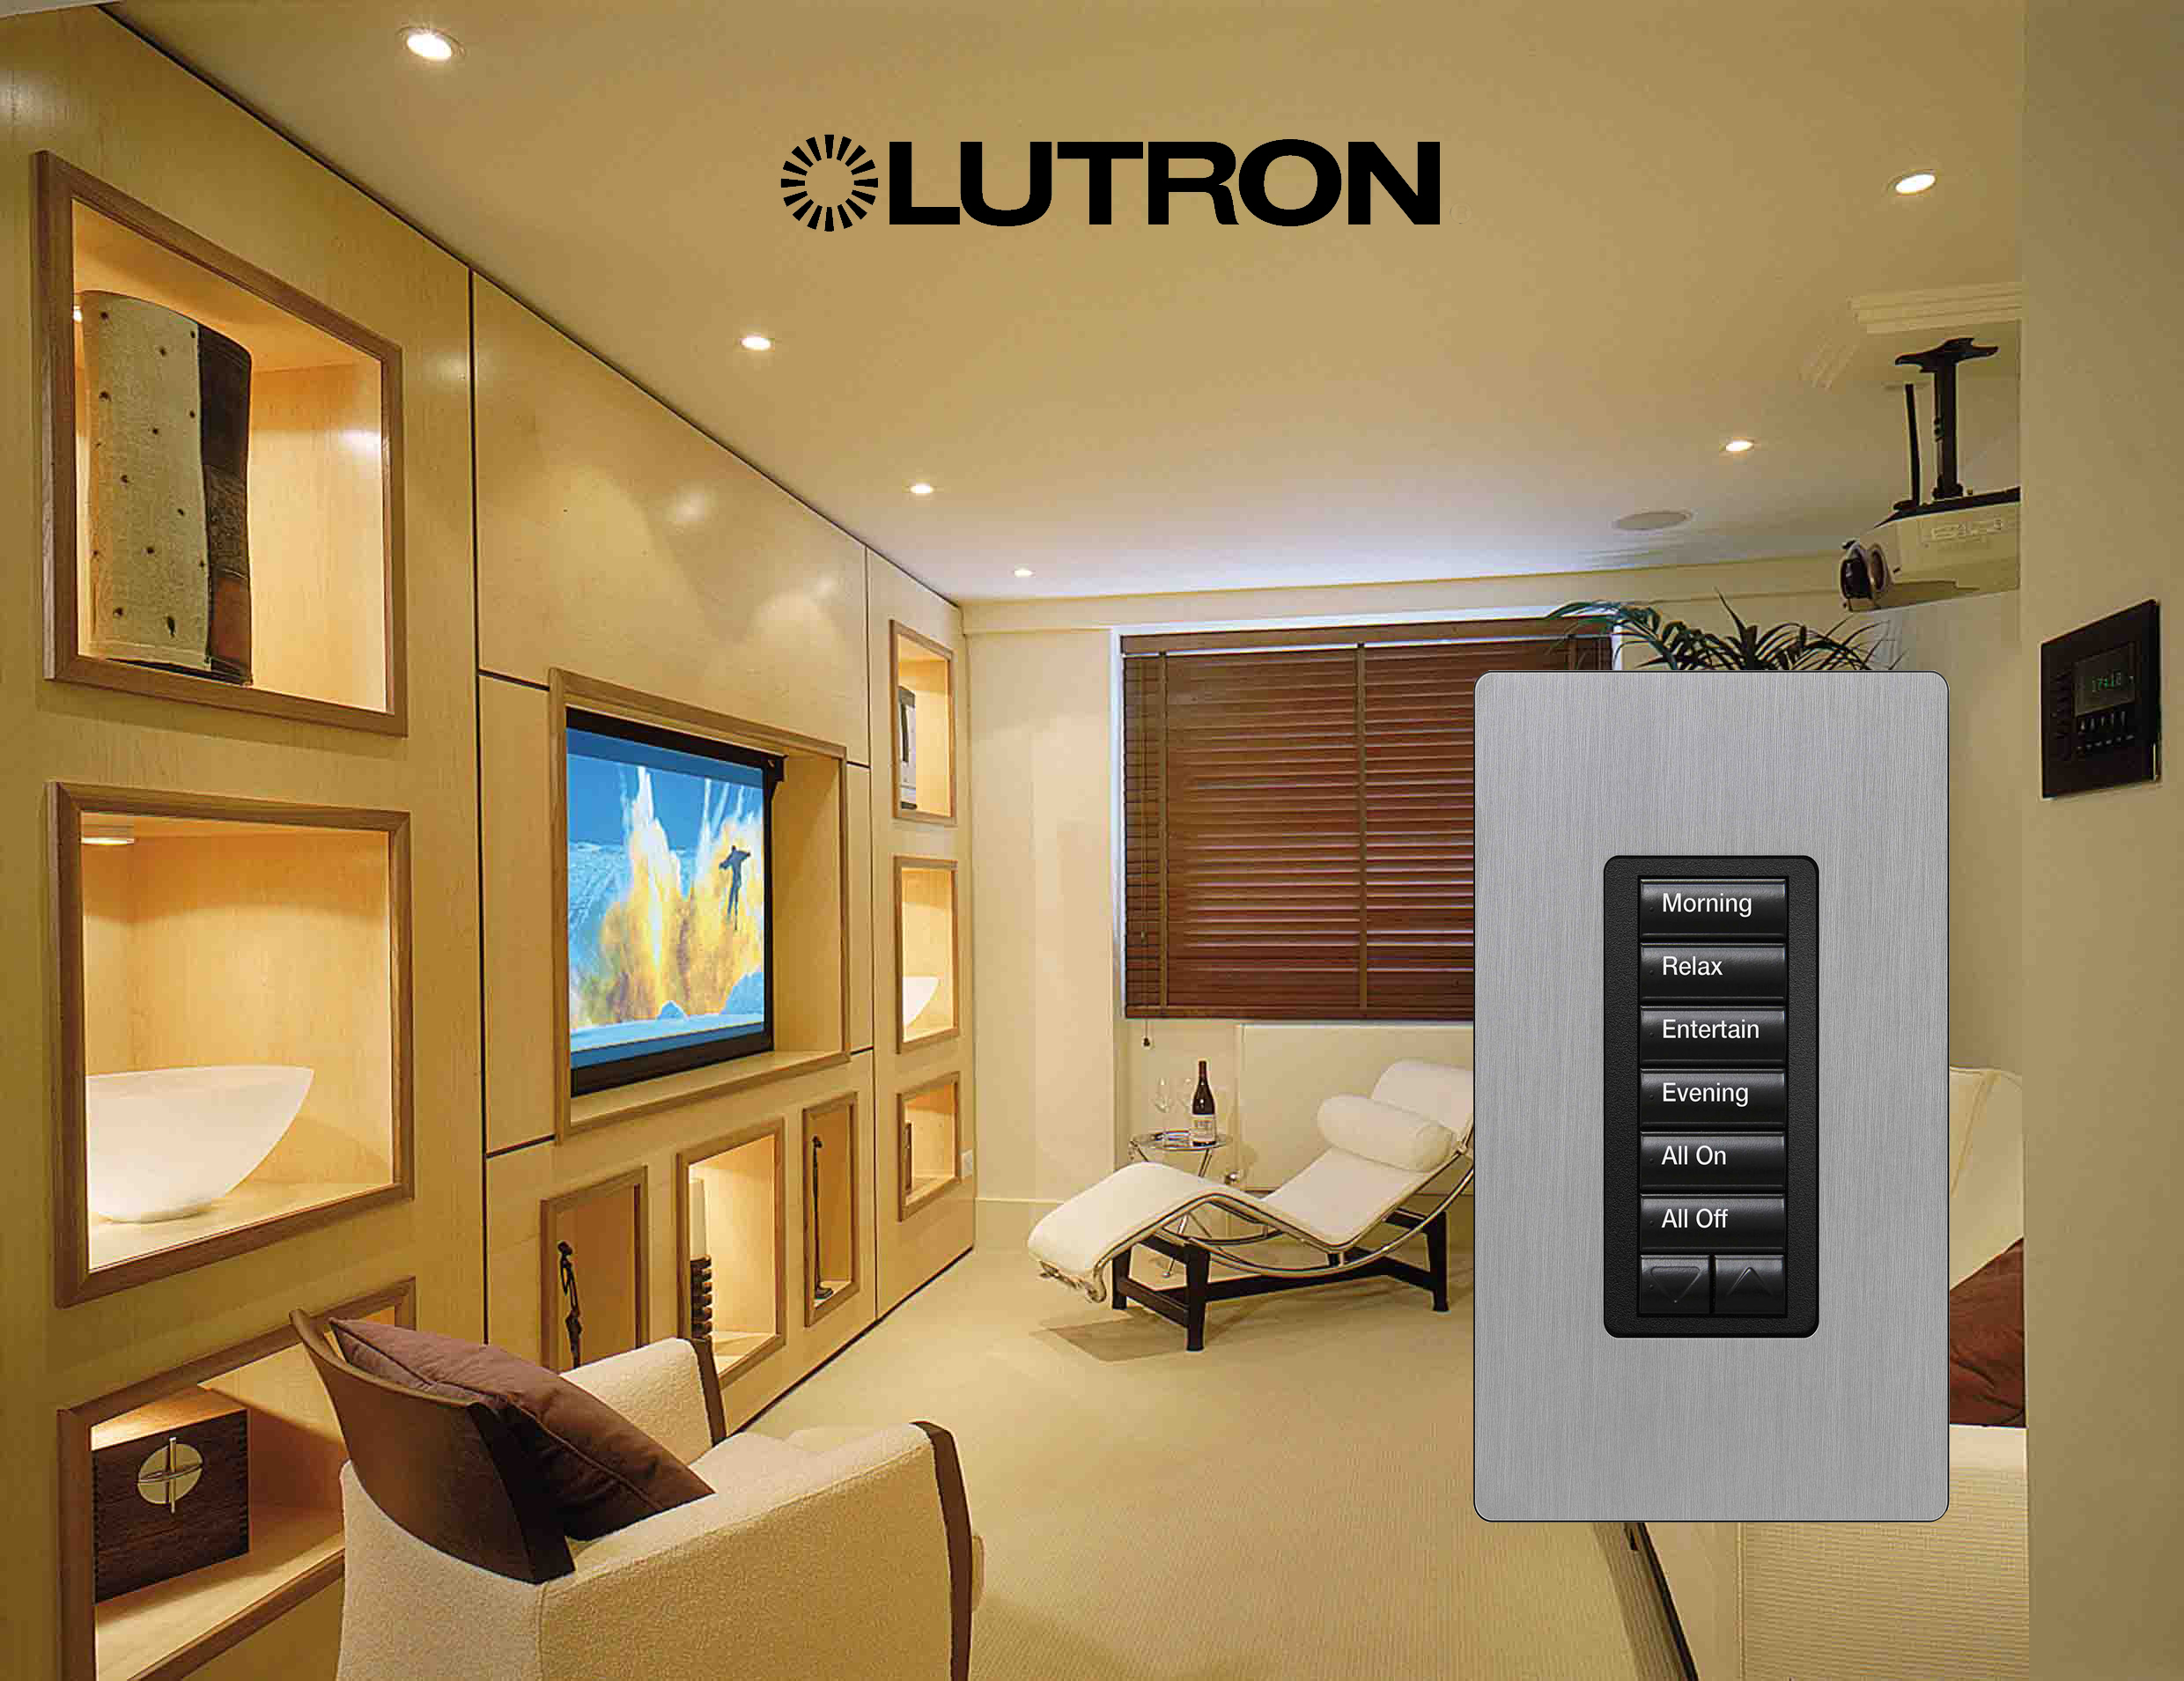 Lutron Lighting Control System Sky House Sussex